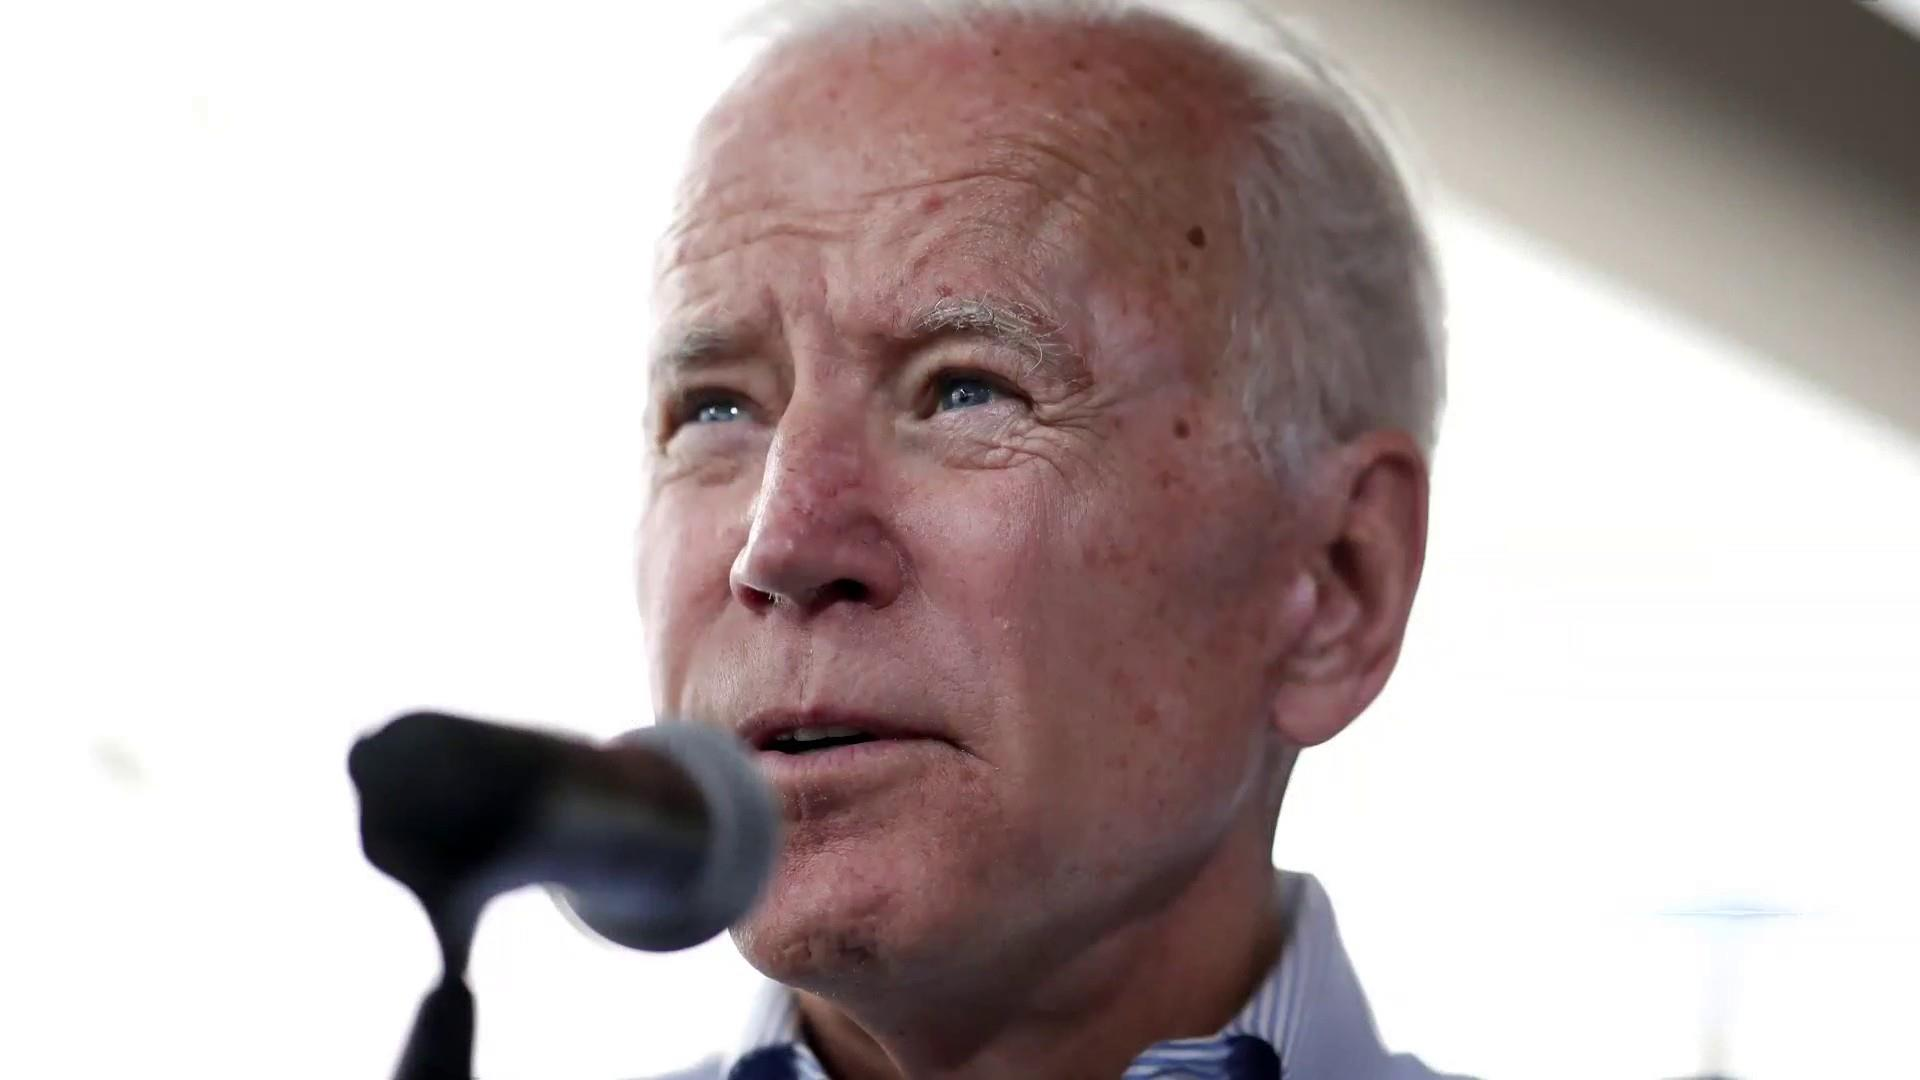 Biden defiant as 2020 rivals slam his remarks on segregationist senators